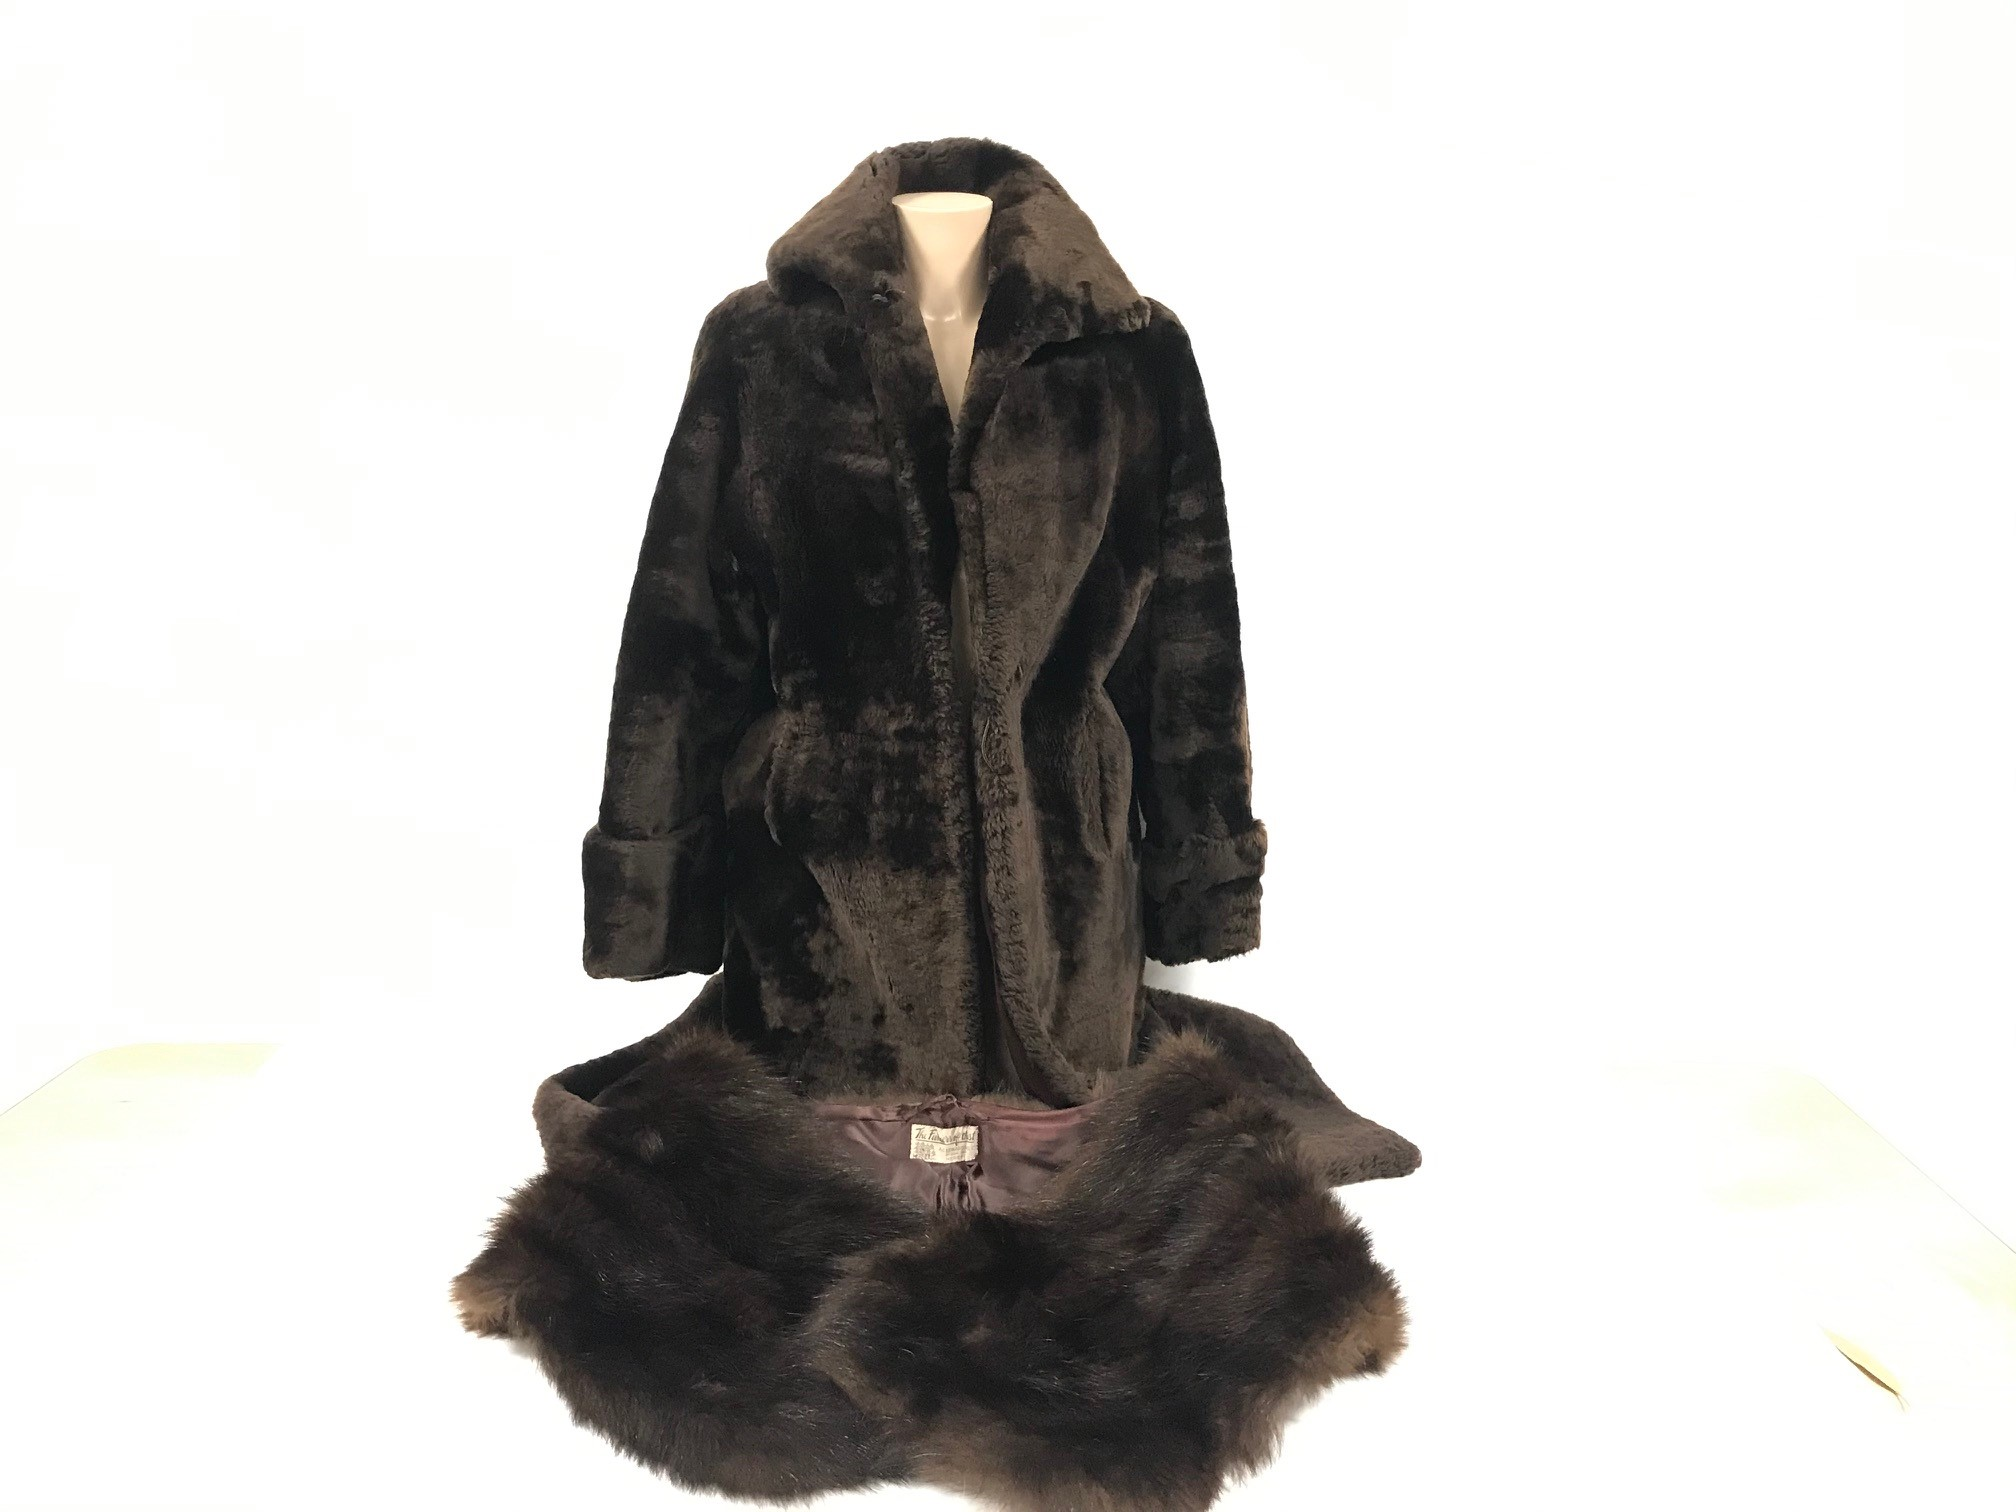 A three quarter length vintage fur coat from Tescan, together with a vintage fur shawl from A.E.